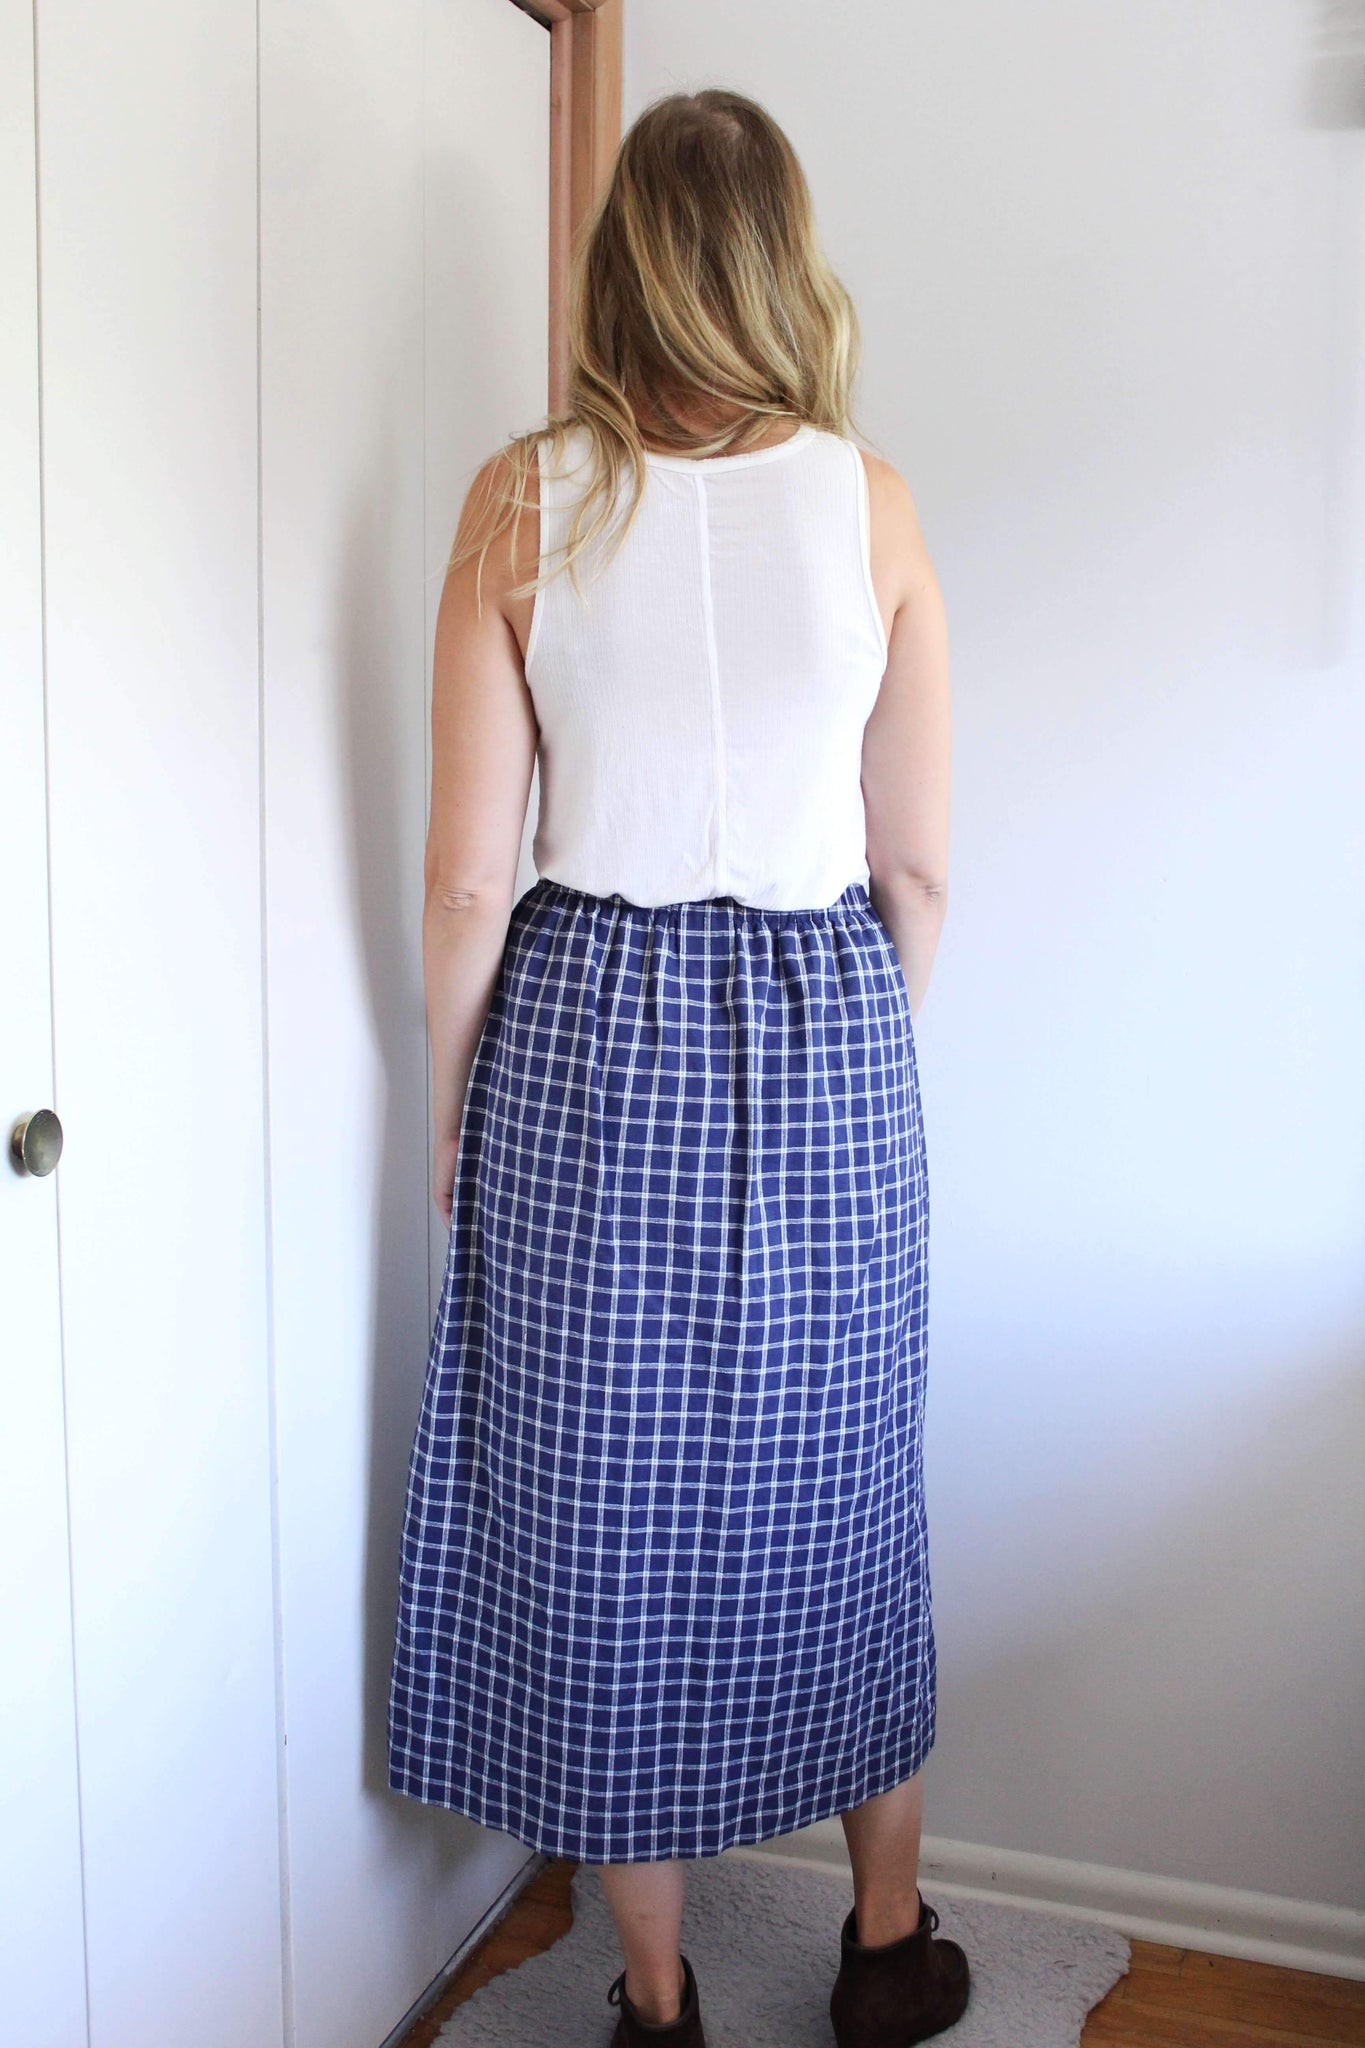 elizabeth o. vintage - Blue and White Plaid Skirt